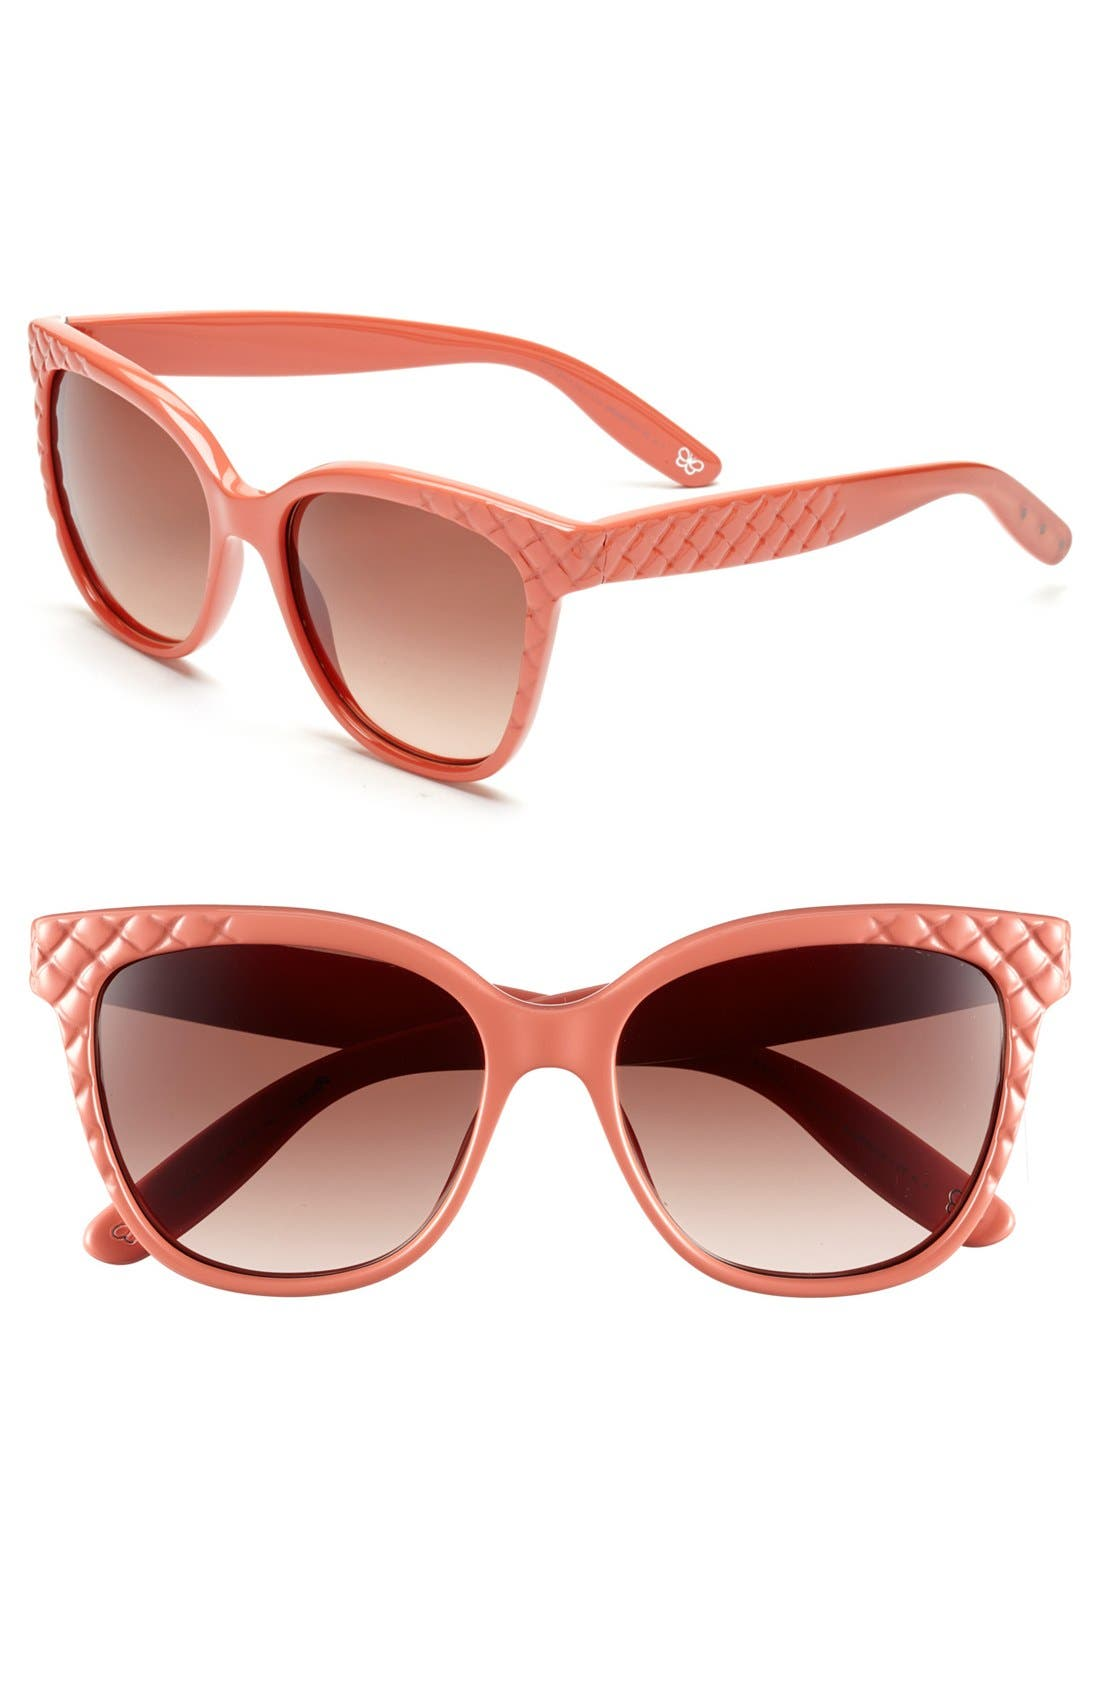 Main Image - Bottega Veneta 55mm Retro Sunglasses